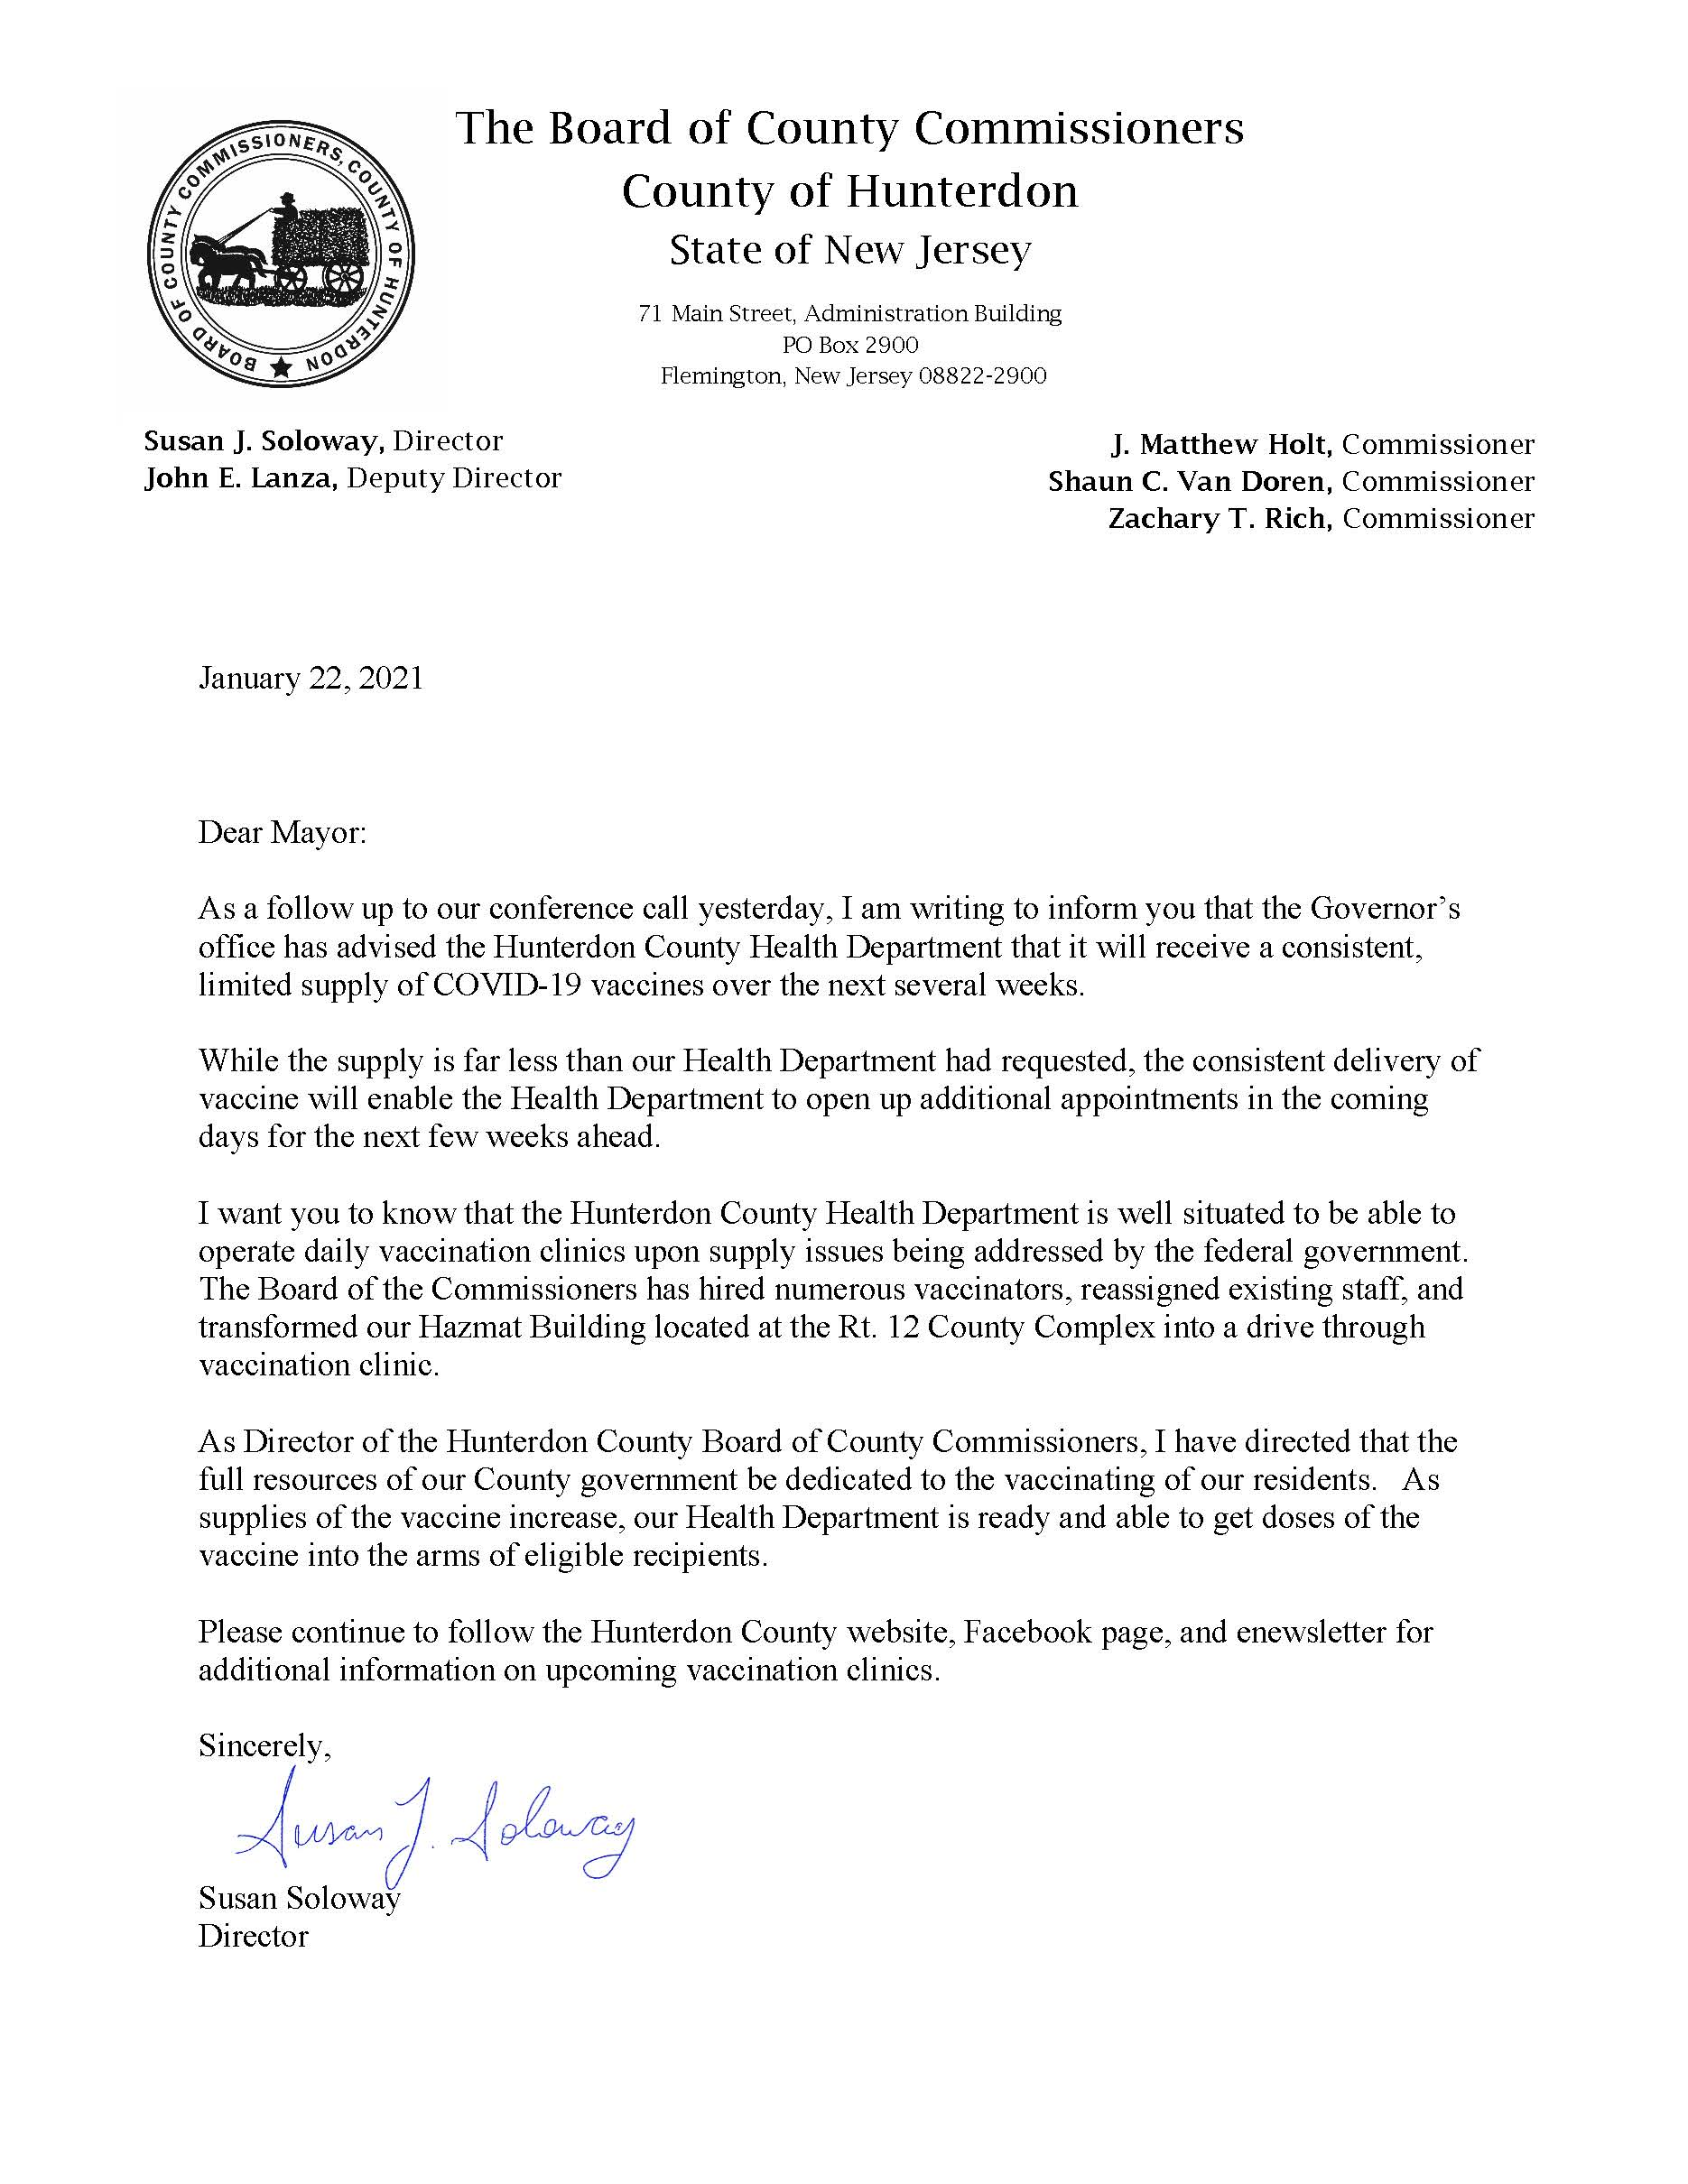 Follow Up Mayors Letter-Soloway